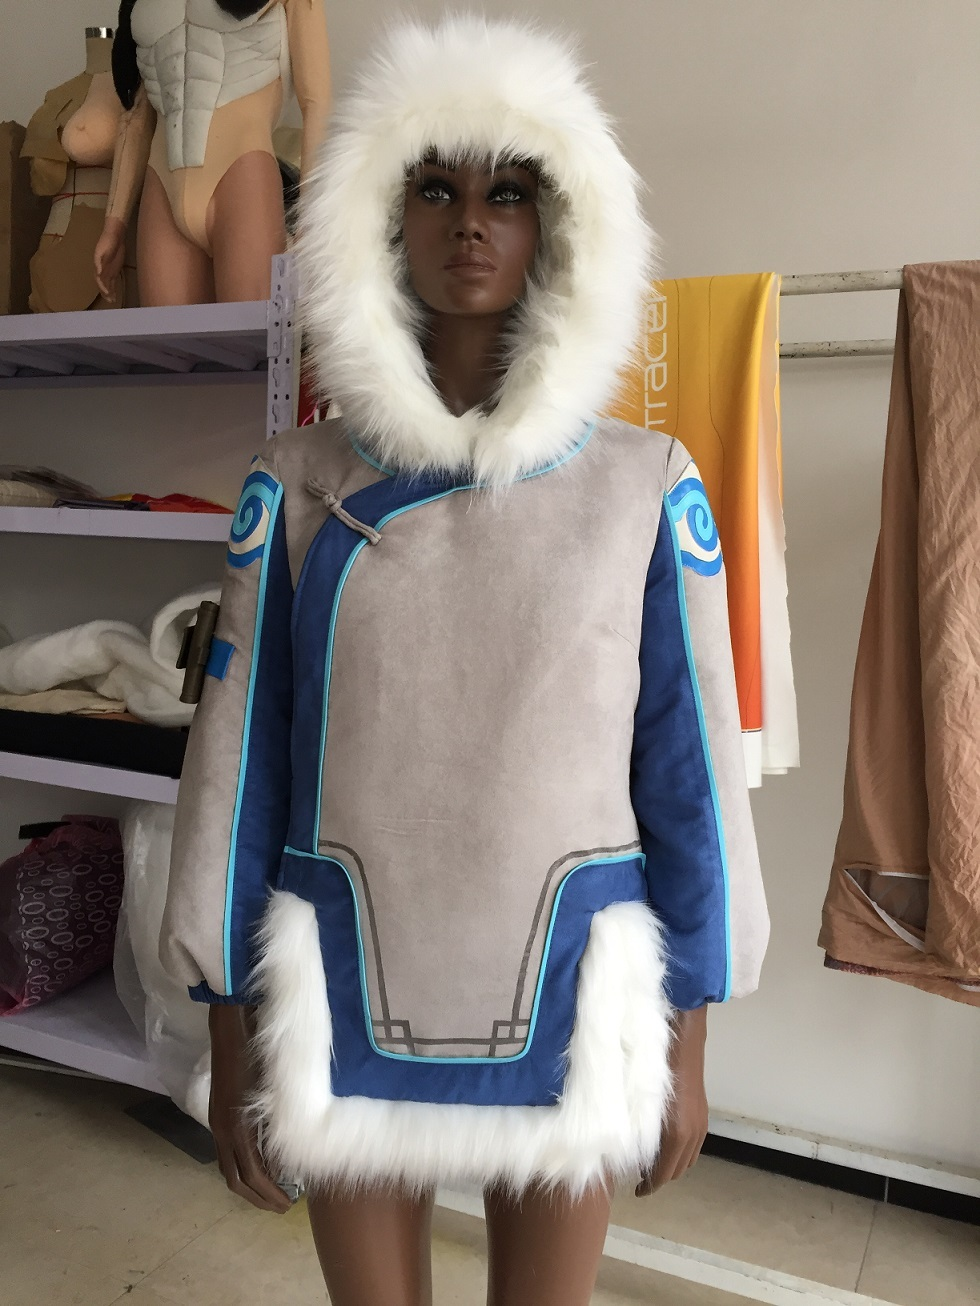 Overwatch Mei Cosplay Costume Buy, Overwatch Mei Cosplay Outfit for Sale